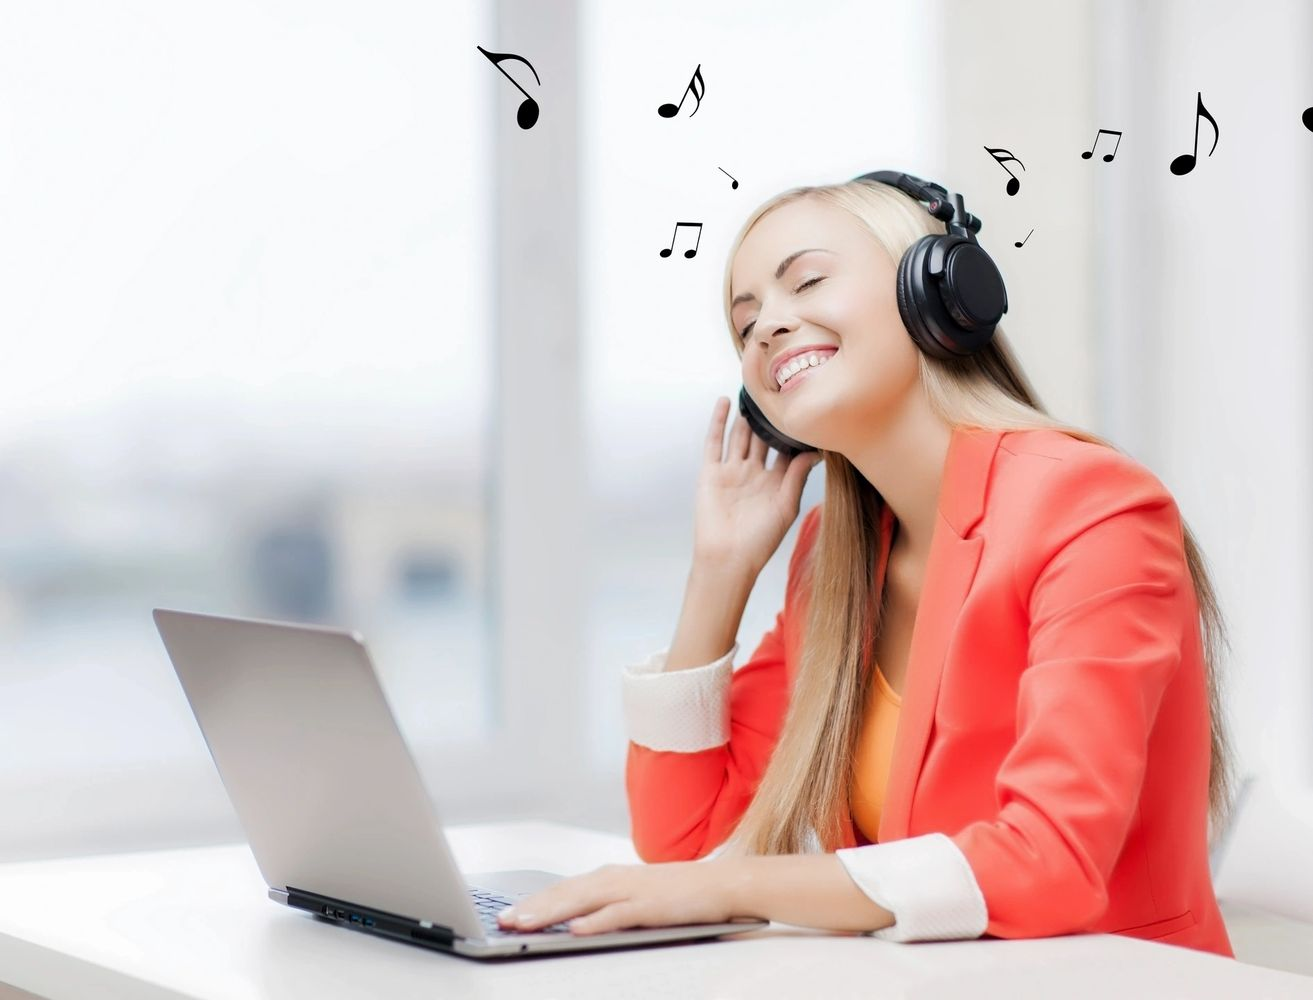 Girl listening to music with headphones.